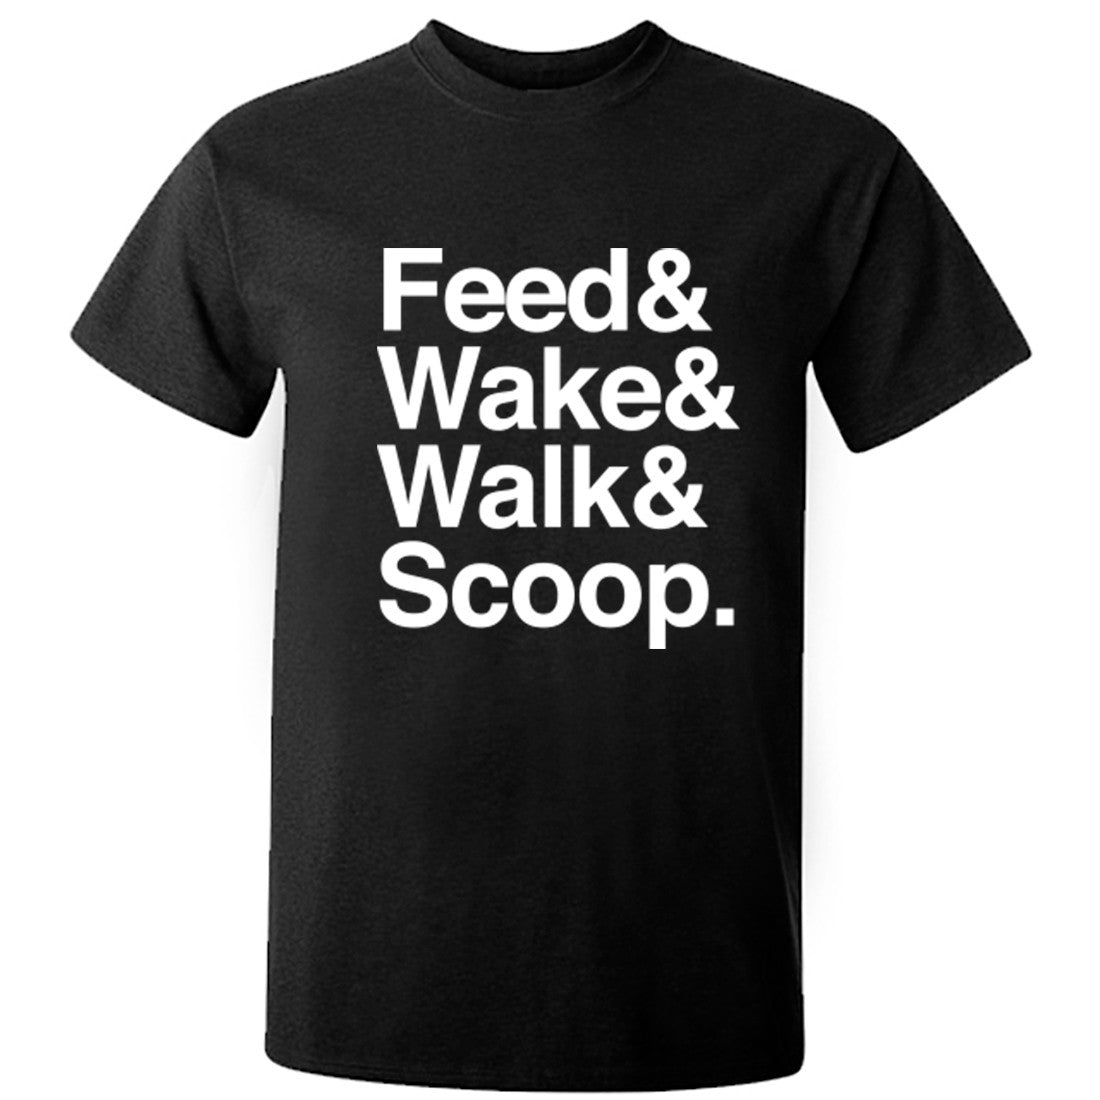 Feed Walk Scoop Repeat Unisex Fit T-Shirt K0288